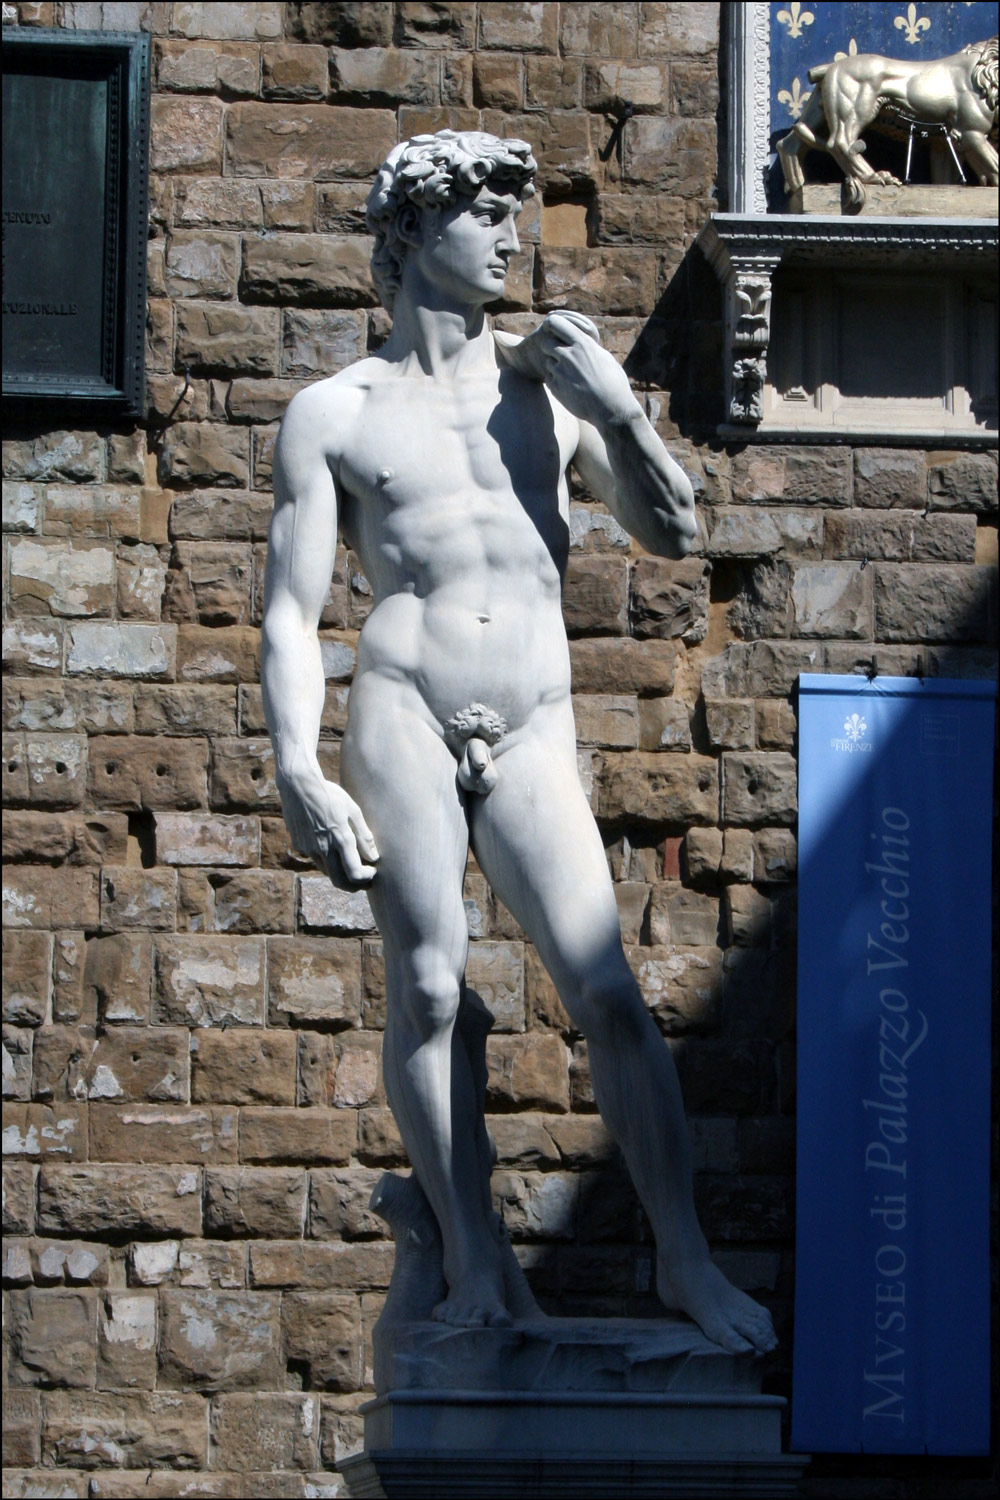 Copy of Michelangelo's David